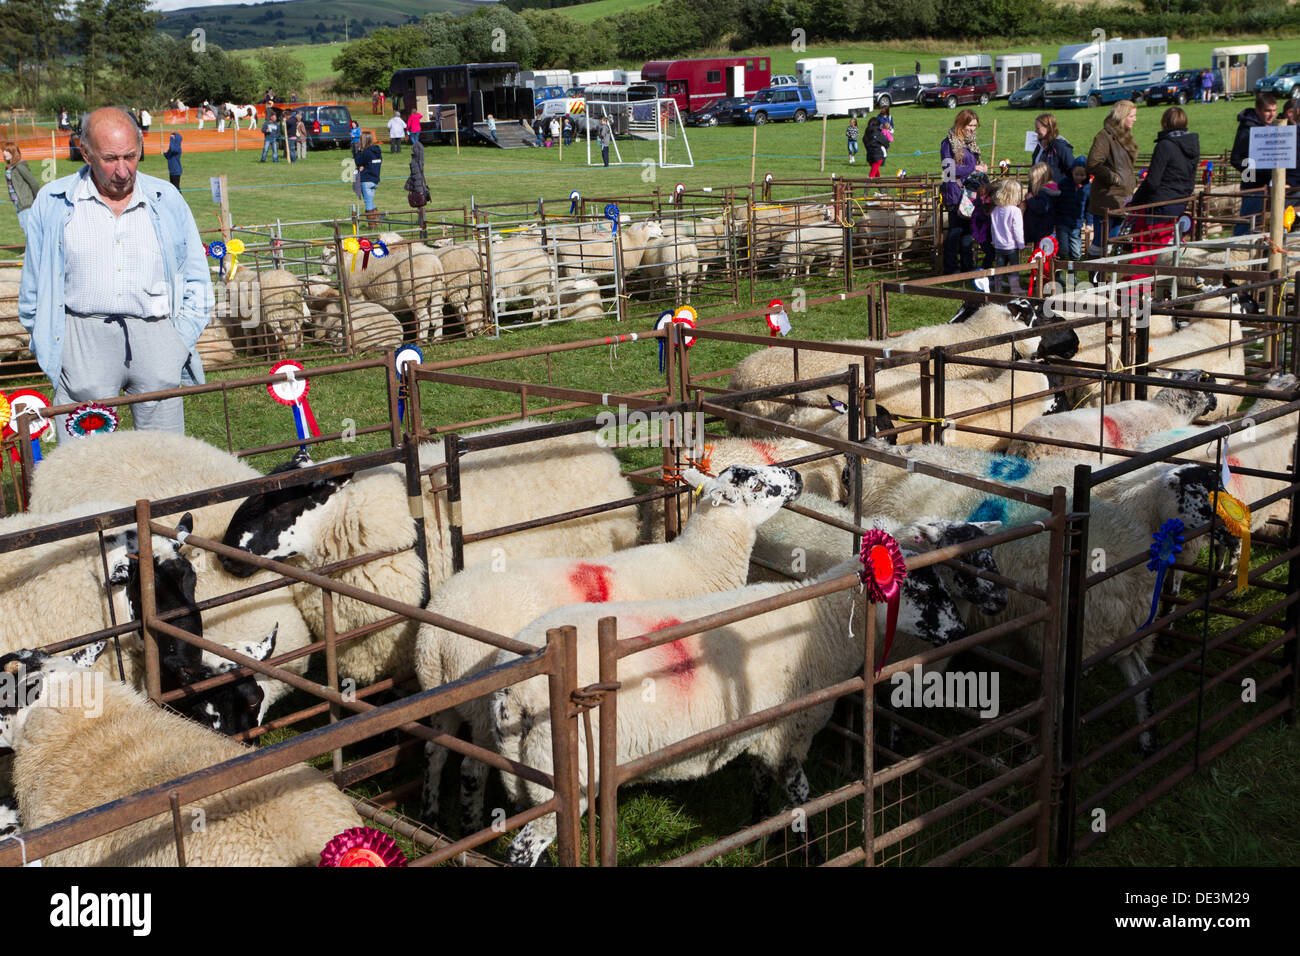 Prize winning sheep in pens at a Welsh country show, Powys, Wales, UK - Stock Image